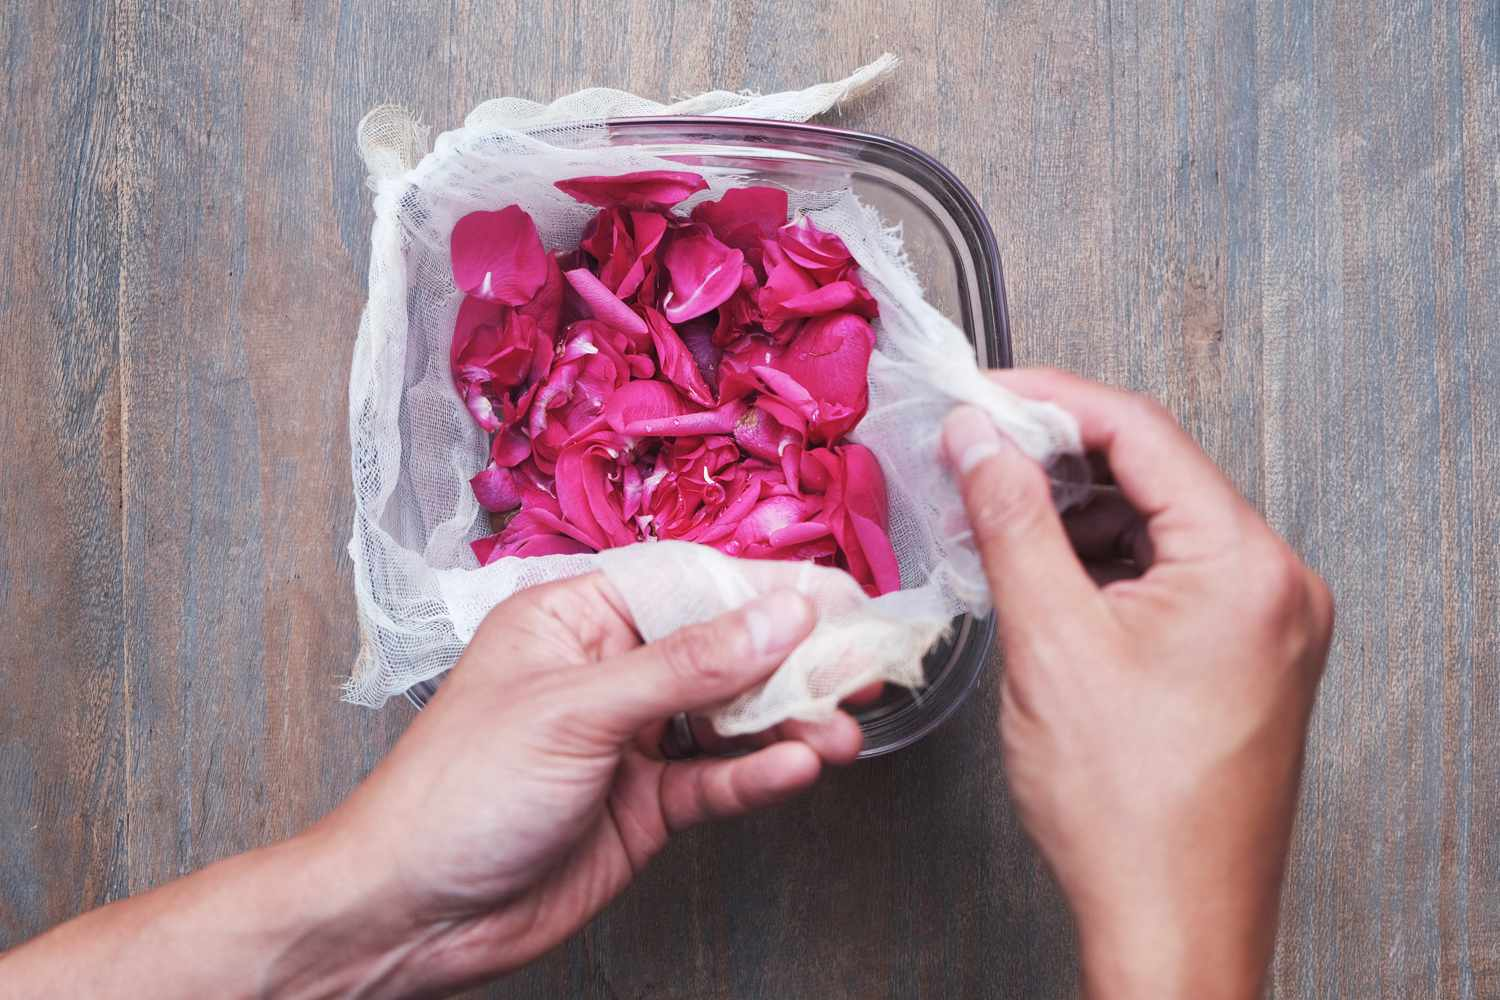 hands pick up cheesecloth lined around glass bowl filled with fresh pink rose petals